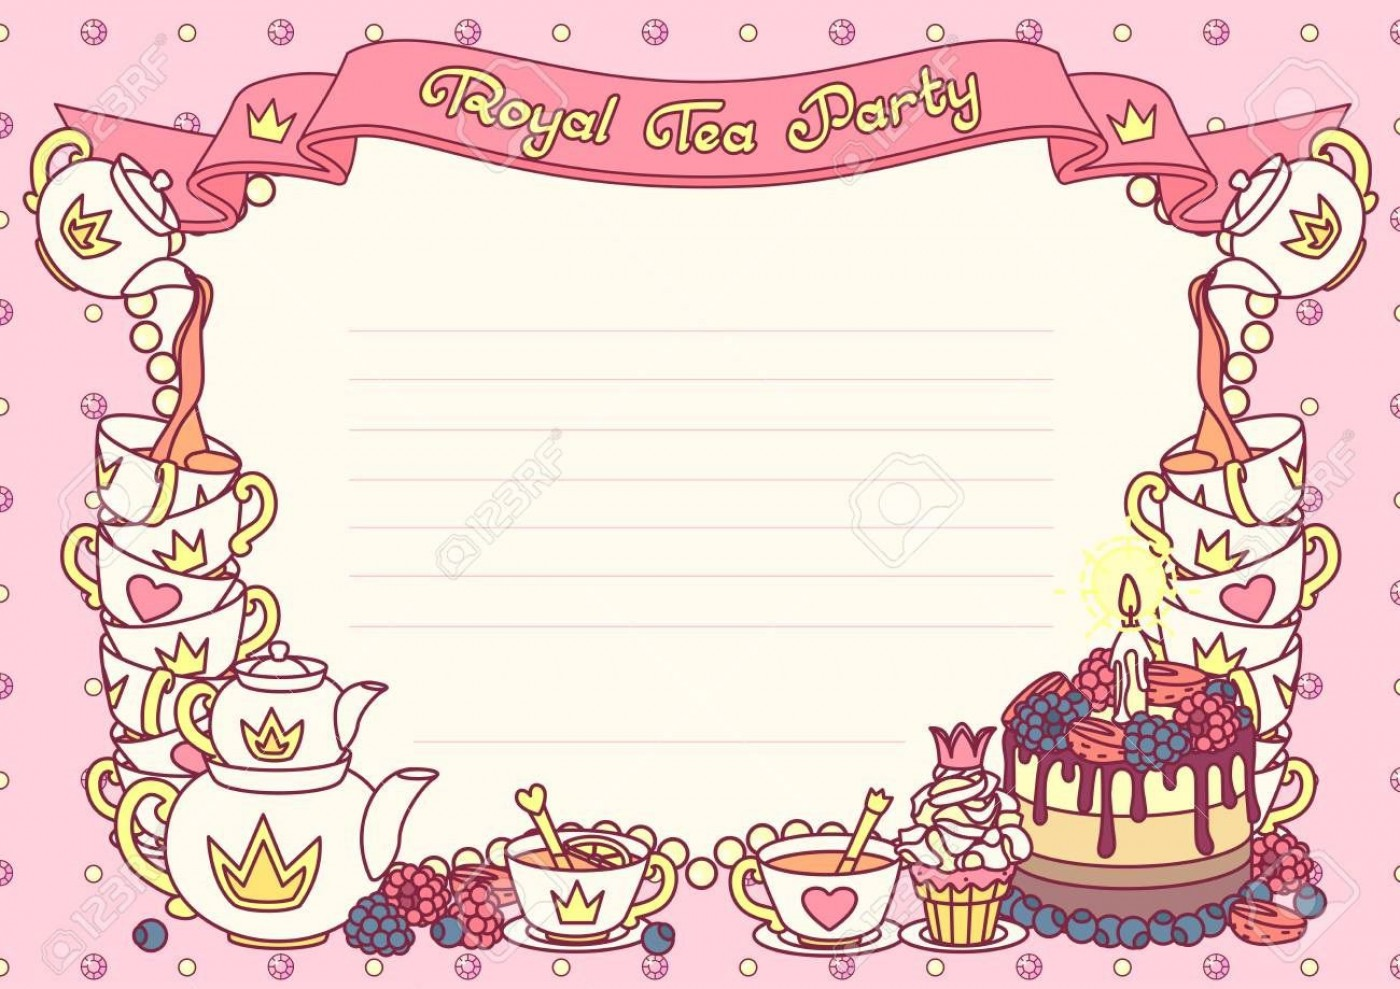 005 Rare Tea Party Invitation Template Image  Card Victorian Wording For Bridal Shower1400